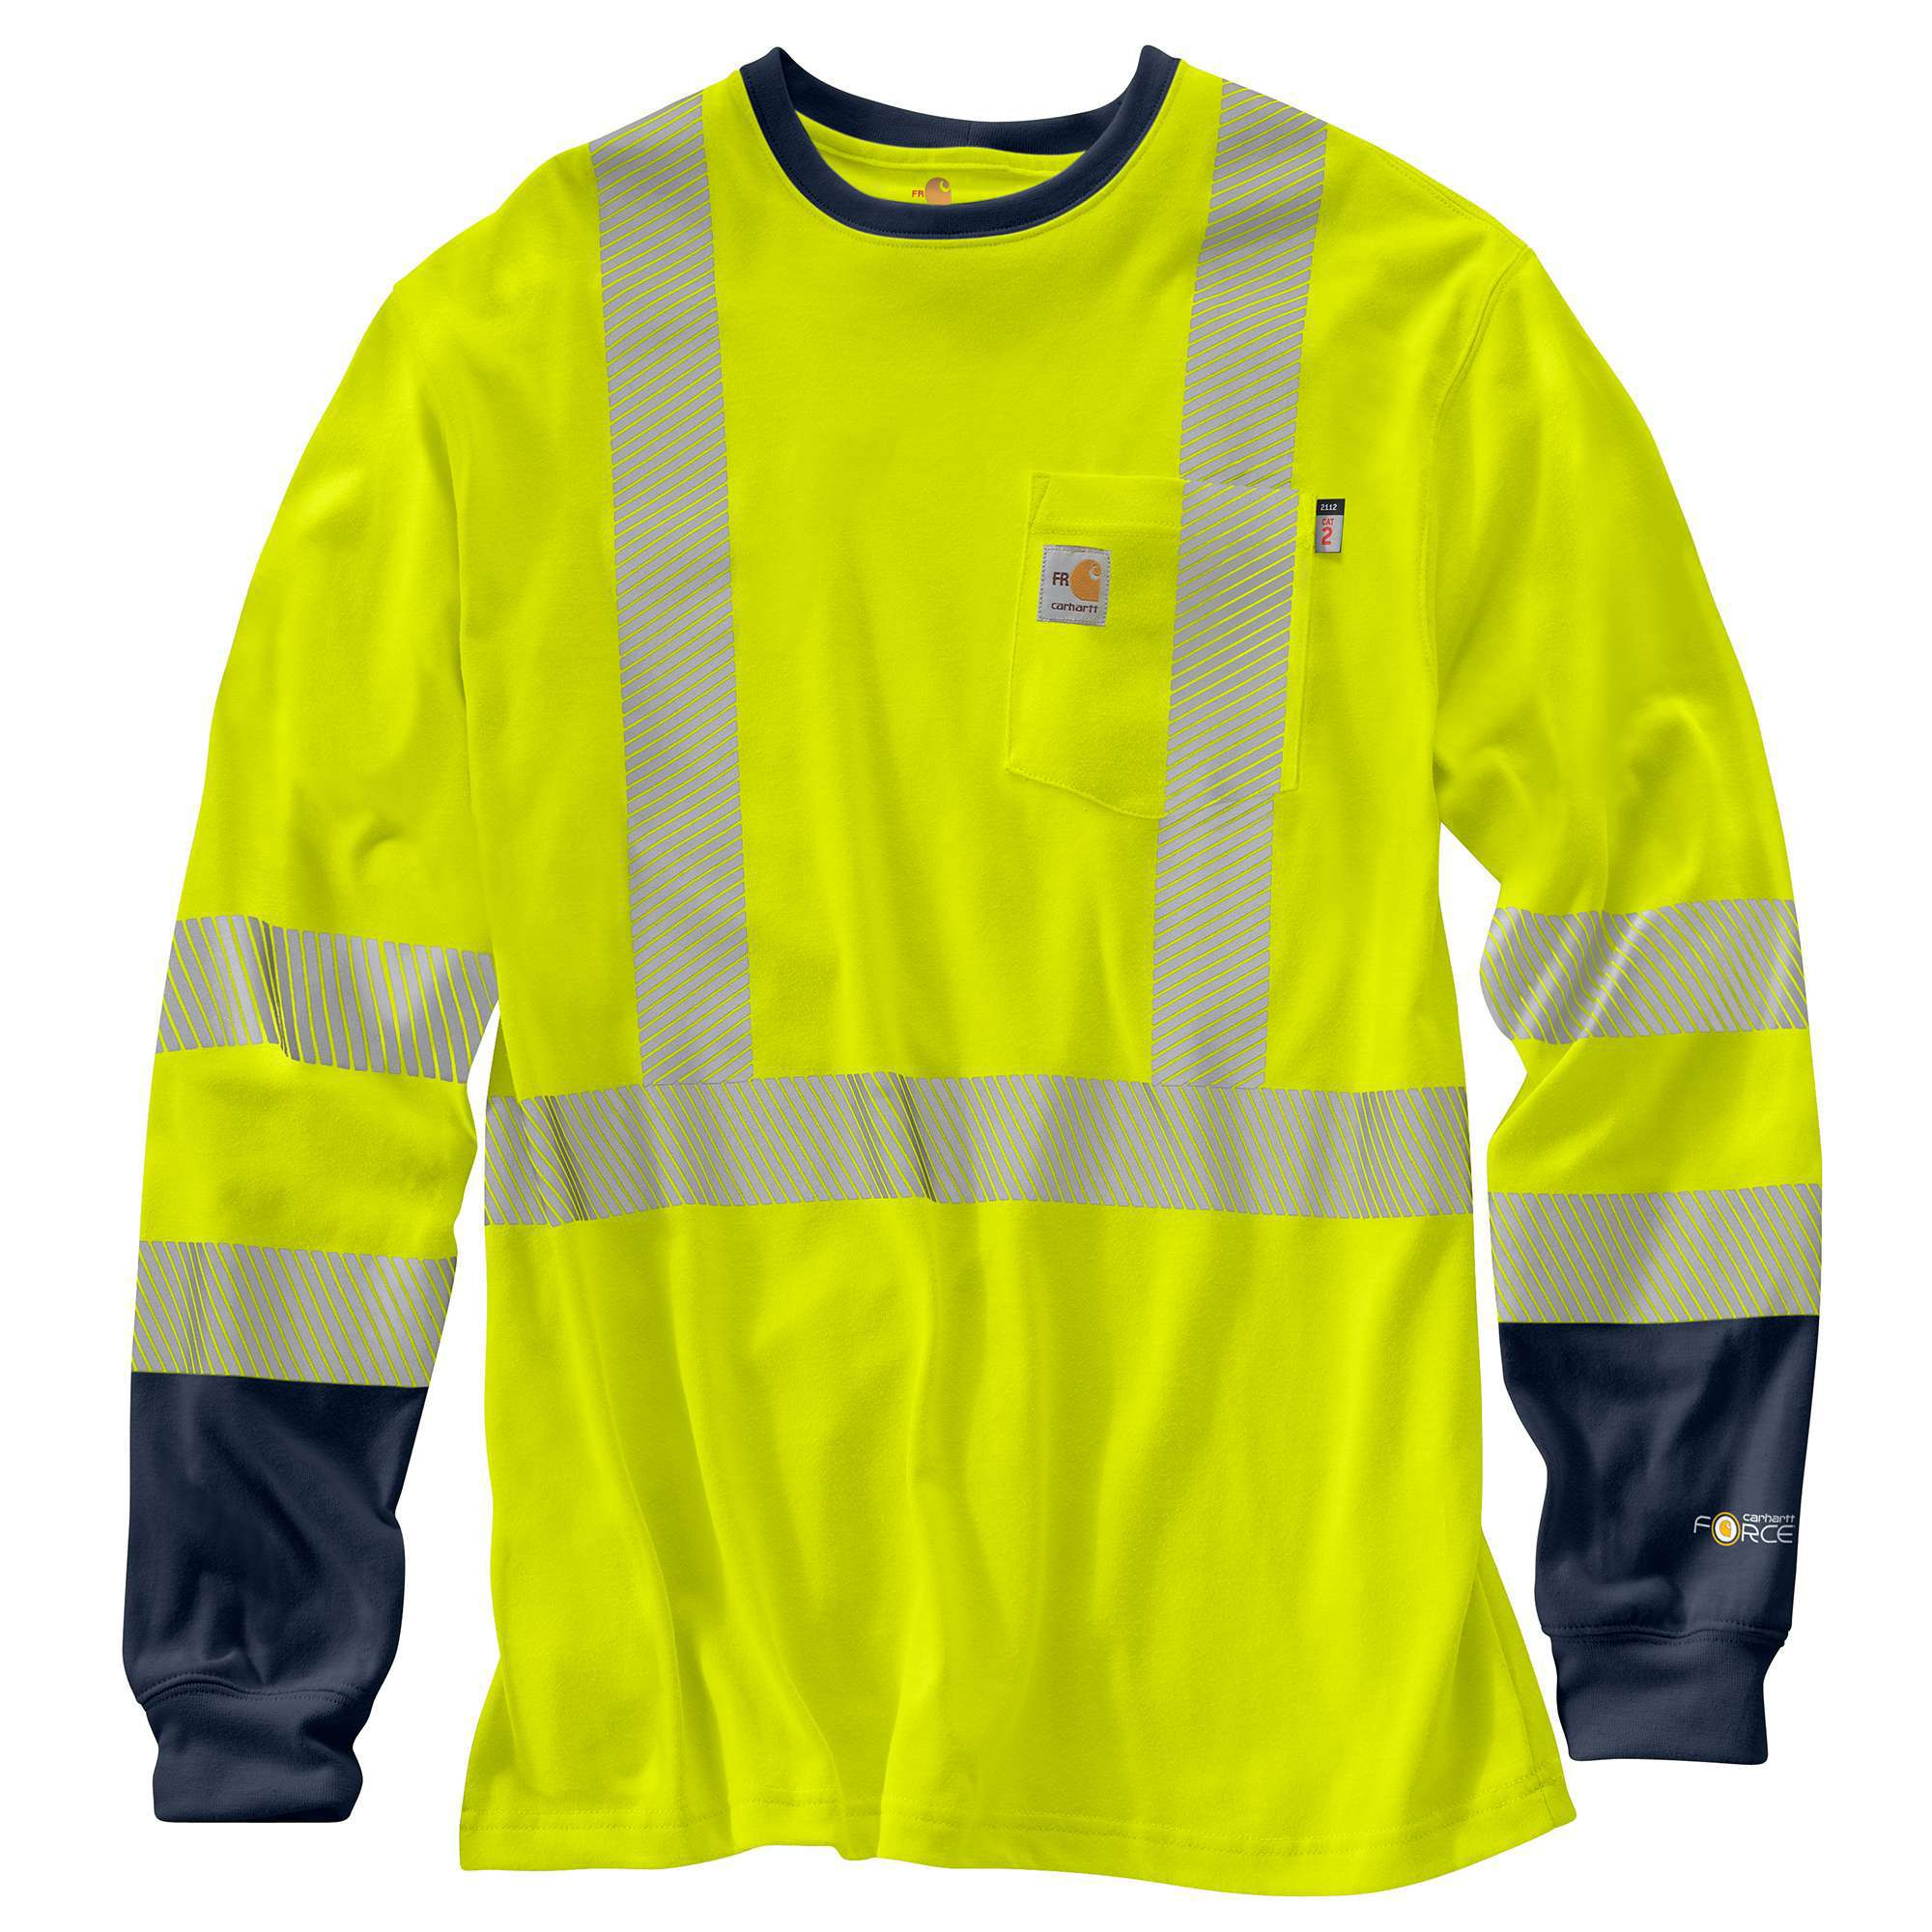 MEN'S FLAME-RESISTANT HIGH-VIS FORCE LONG-SLEEVE T-SHIRT CLASS 3